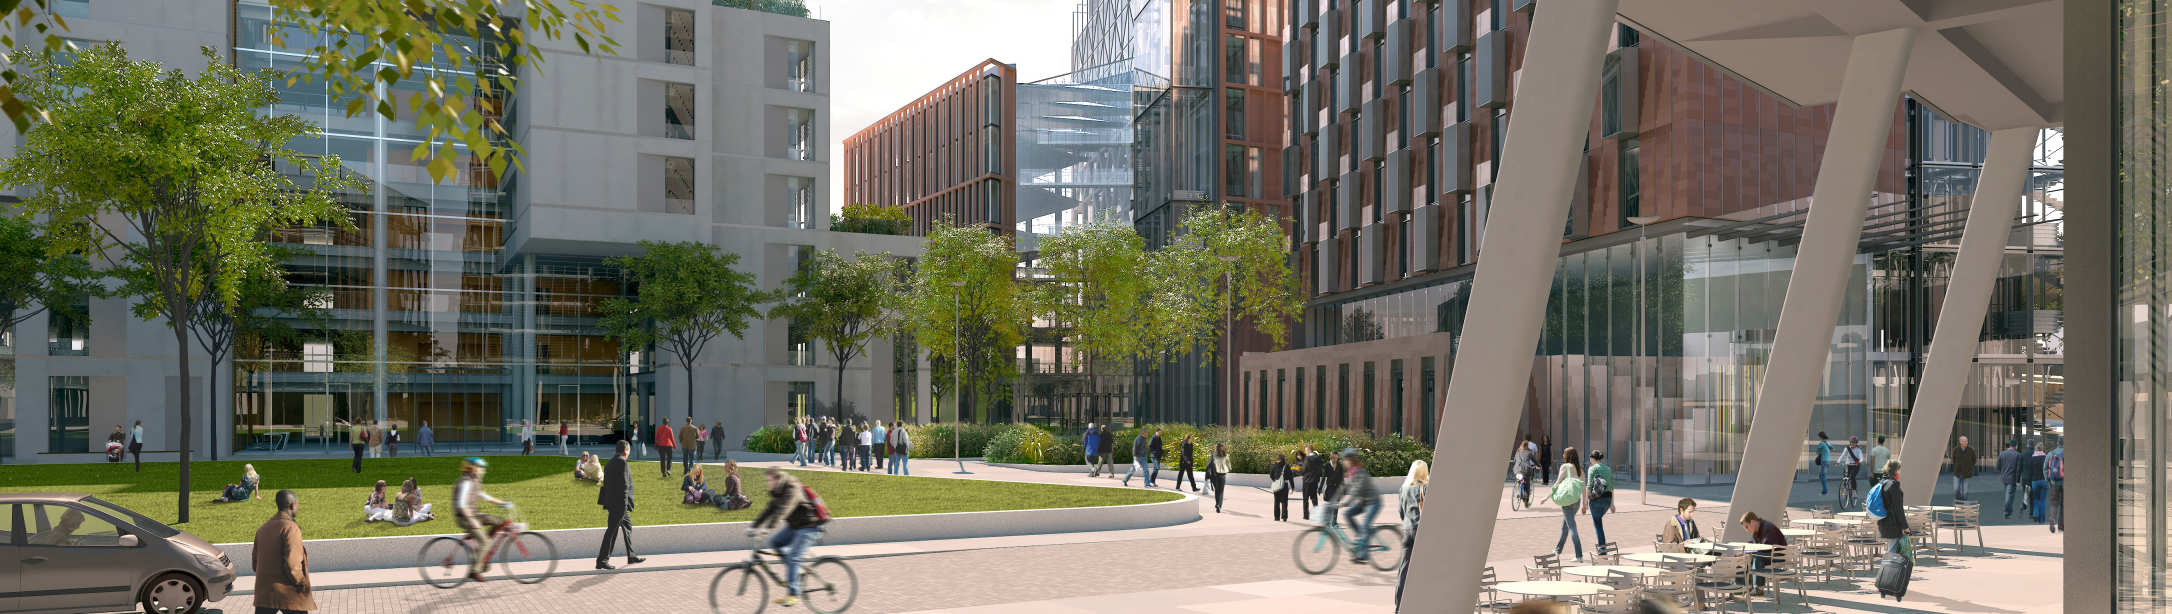 Artist's impression of White City Campus